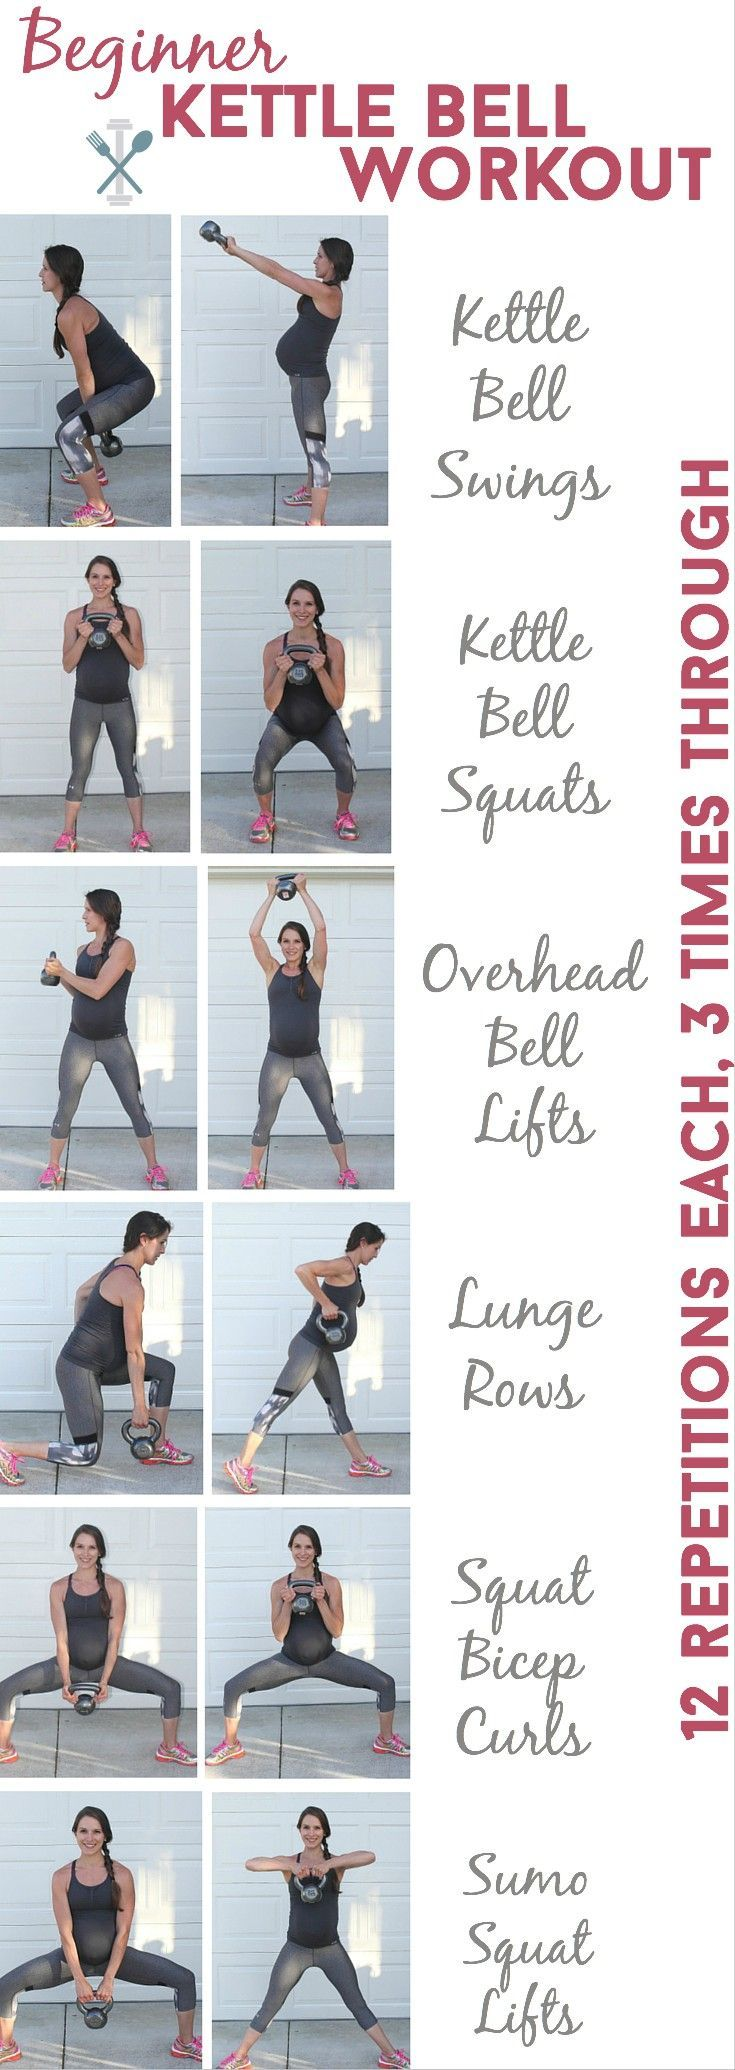 This is the BEST kettle bell workout for beginners and even seasoned vets! These effective compound movements will make you fall in love with kettle bell training. Step by step instructions and photos.